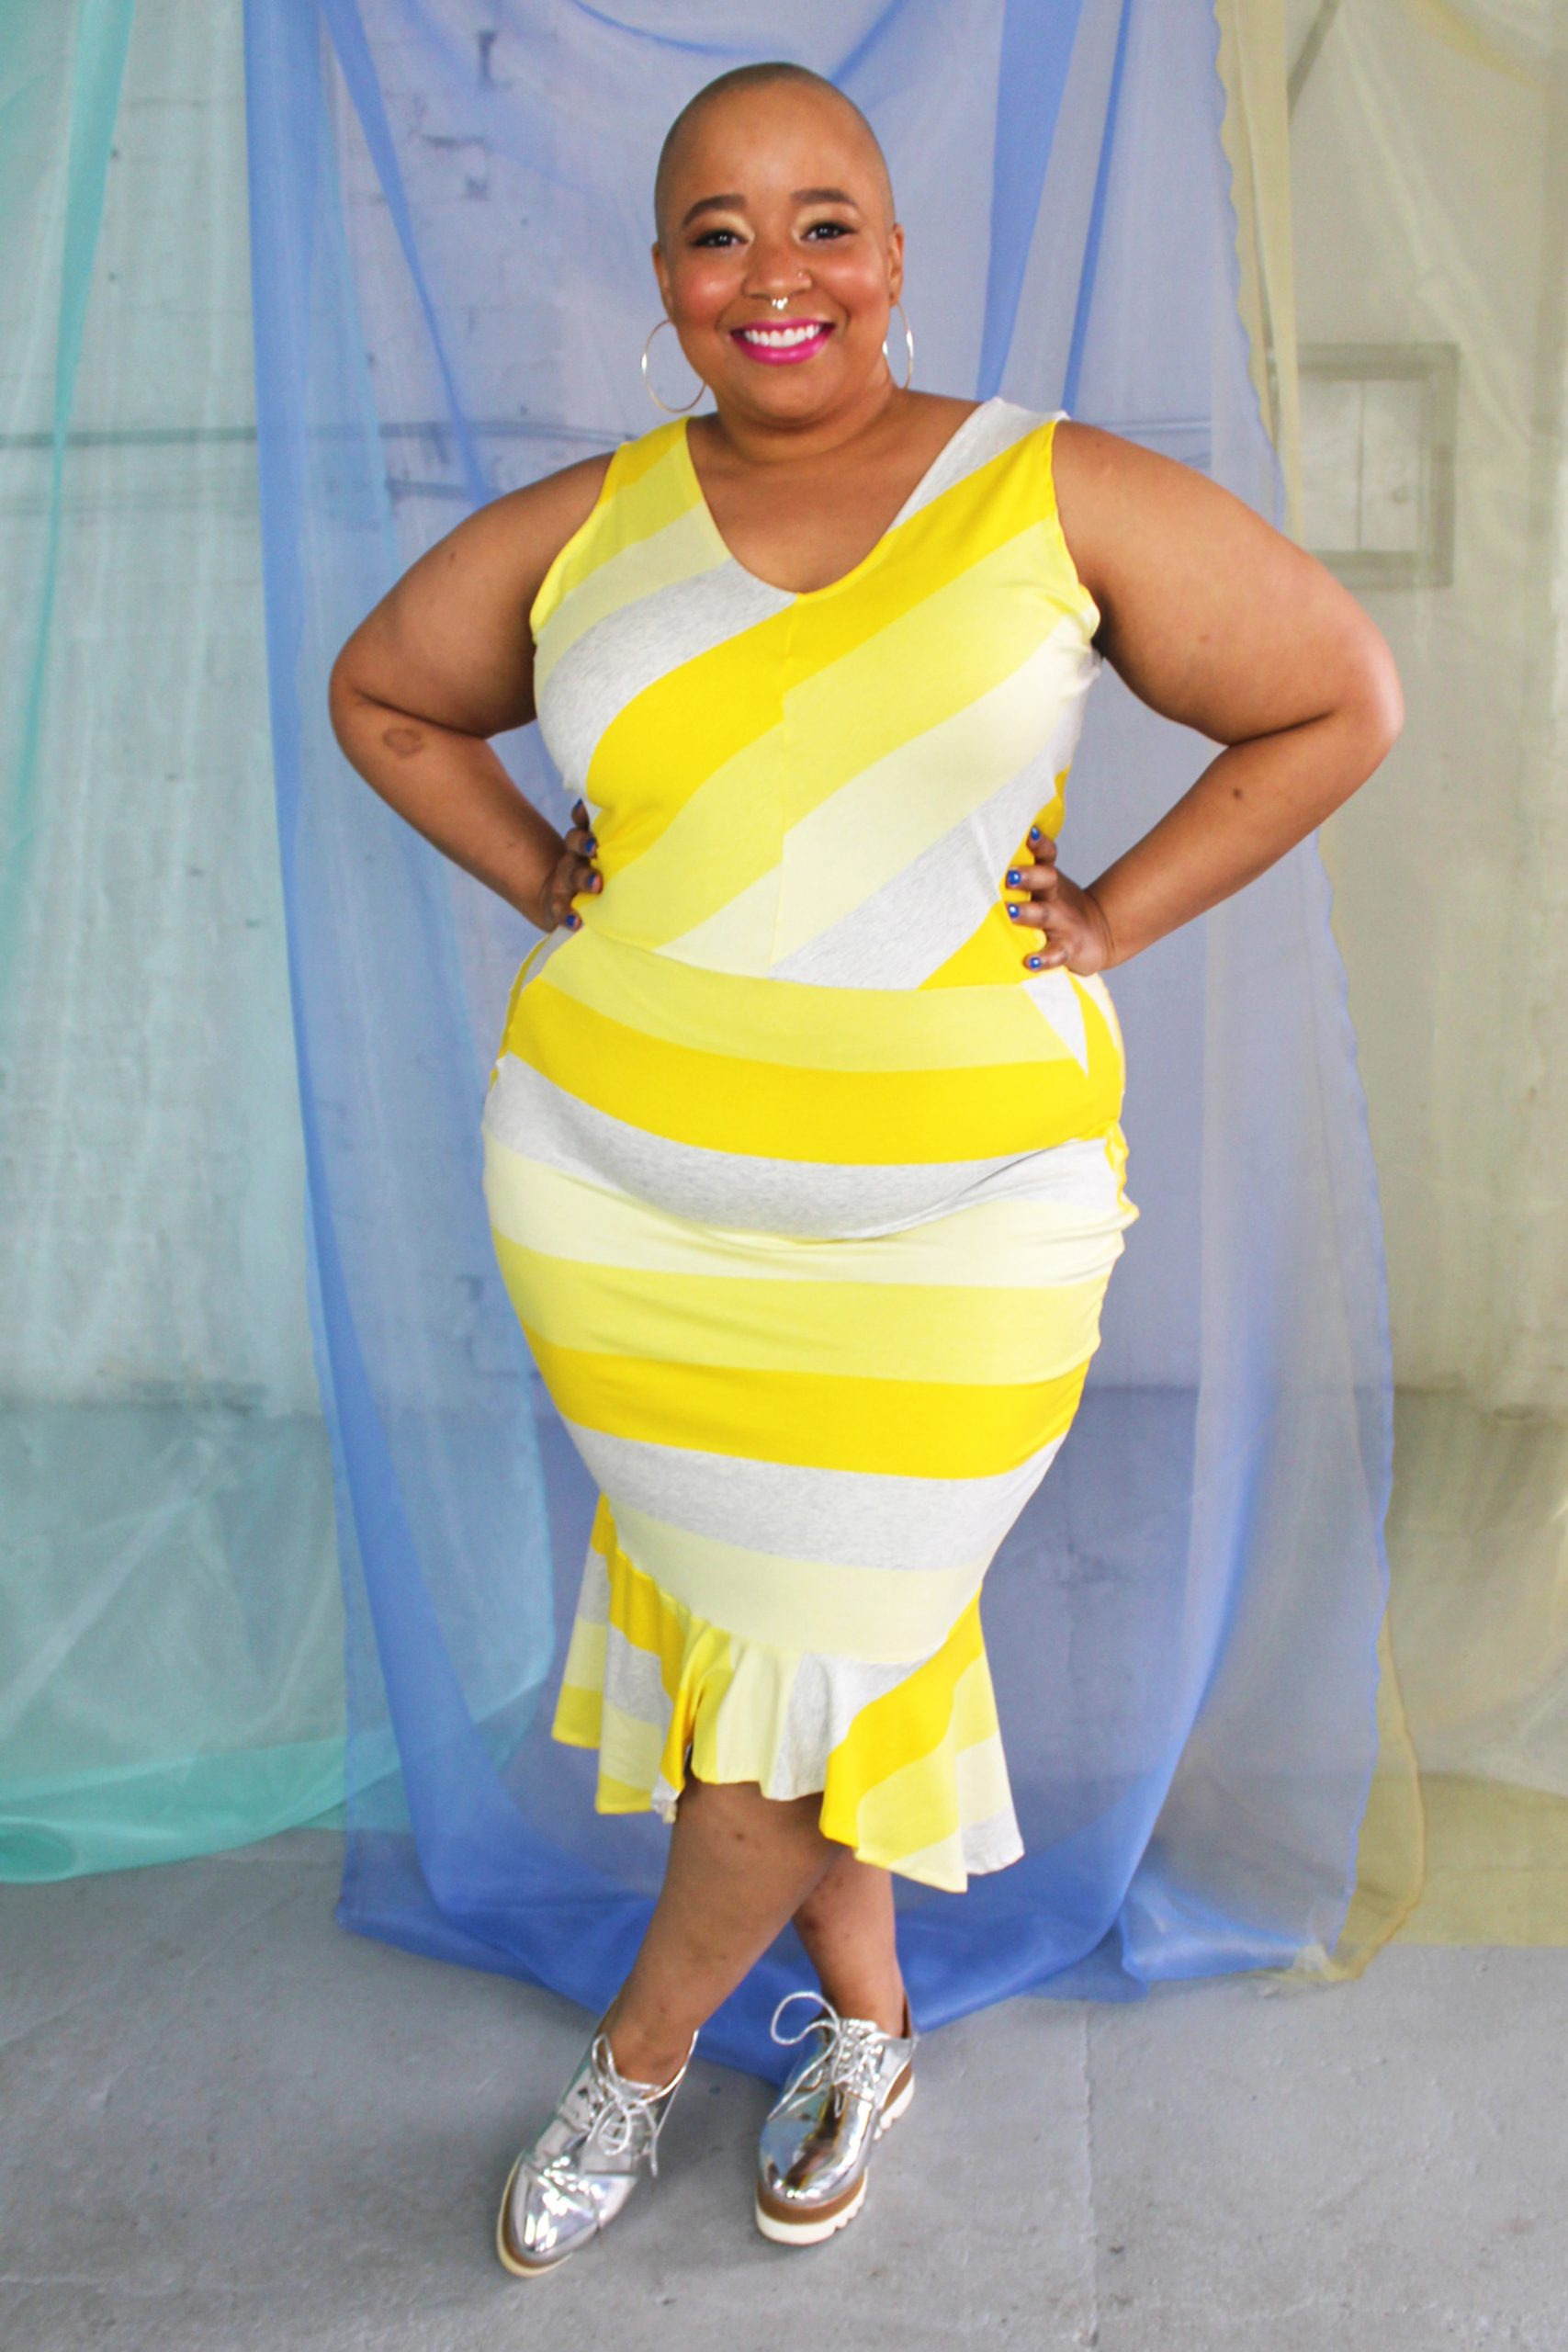 Yellow v-neck striped dress with pencil skirt and ruffle hemline modeled by plus size black bald model.